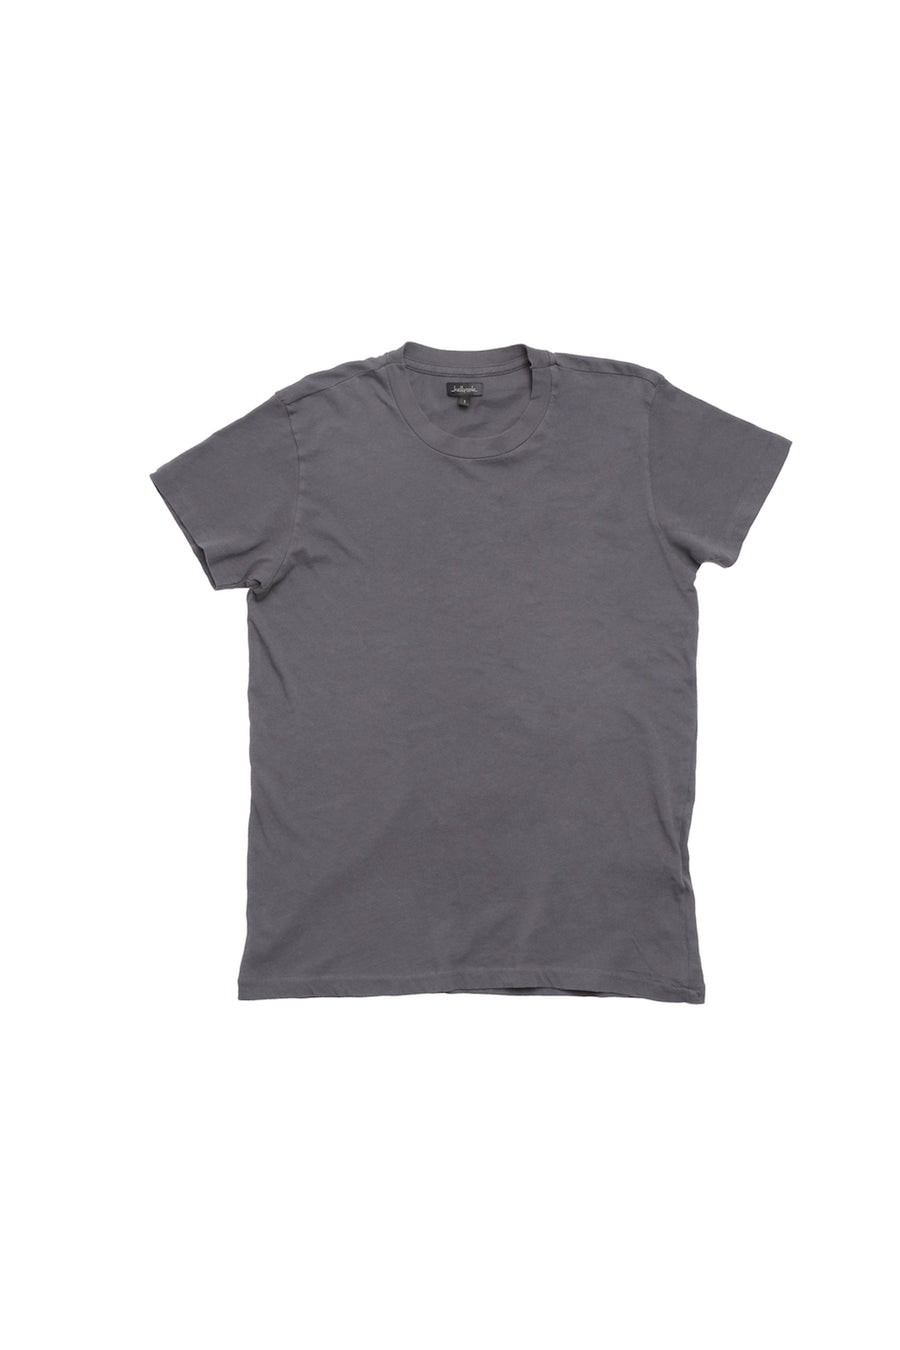 Kelly Cole Signature Short Sleeved Crewneck T Shirt - Grey